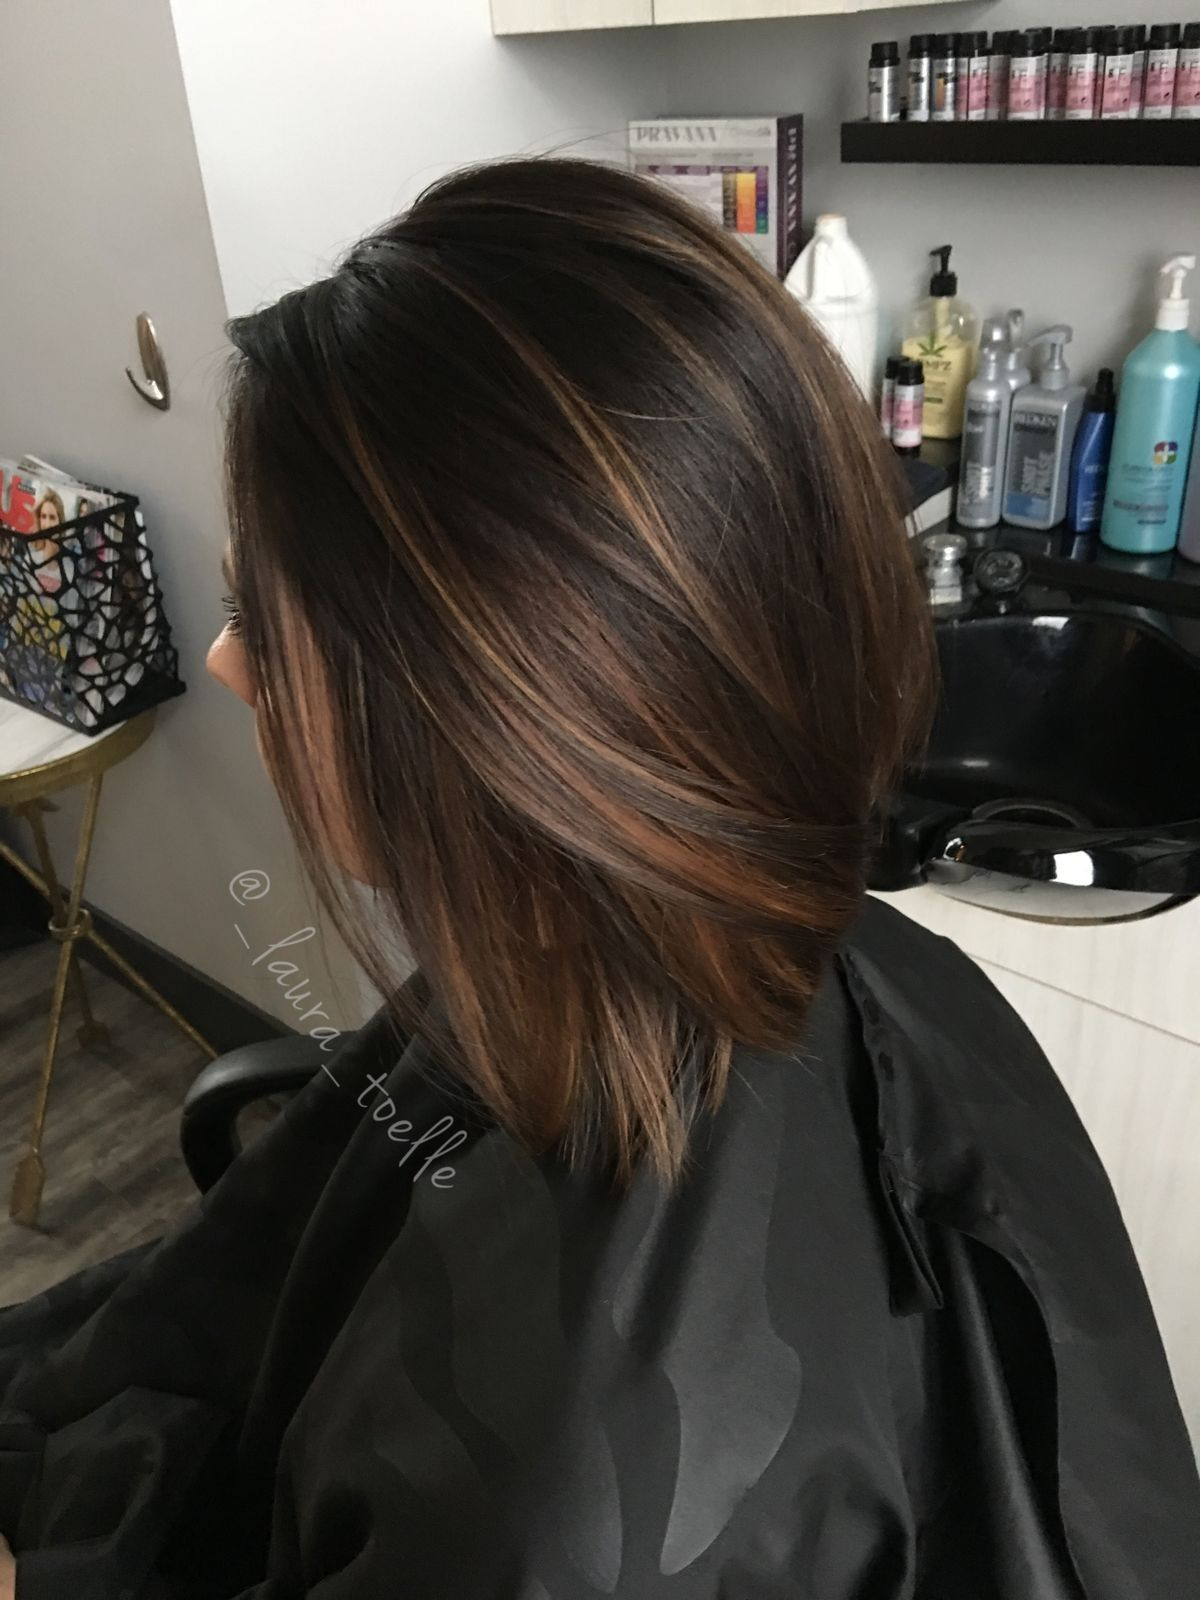 Pin by jennifer towne on hair pinterest hair hair styles and